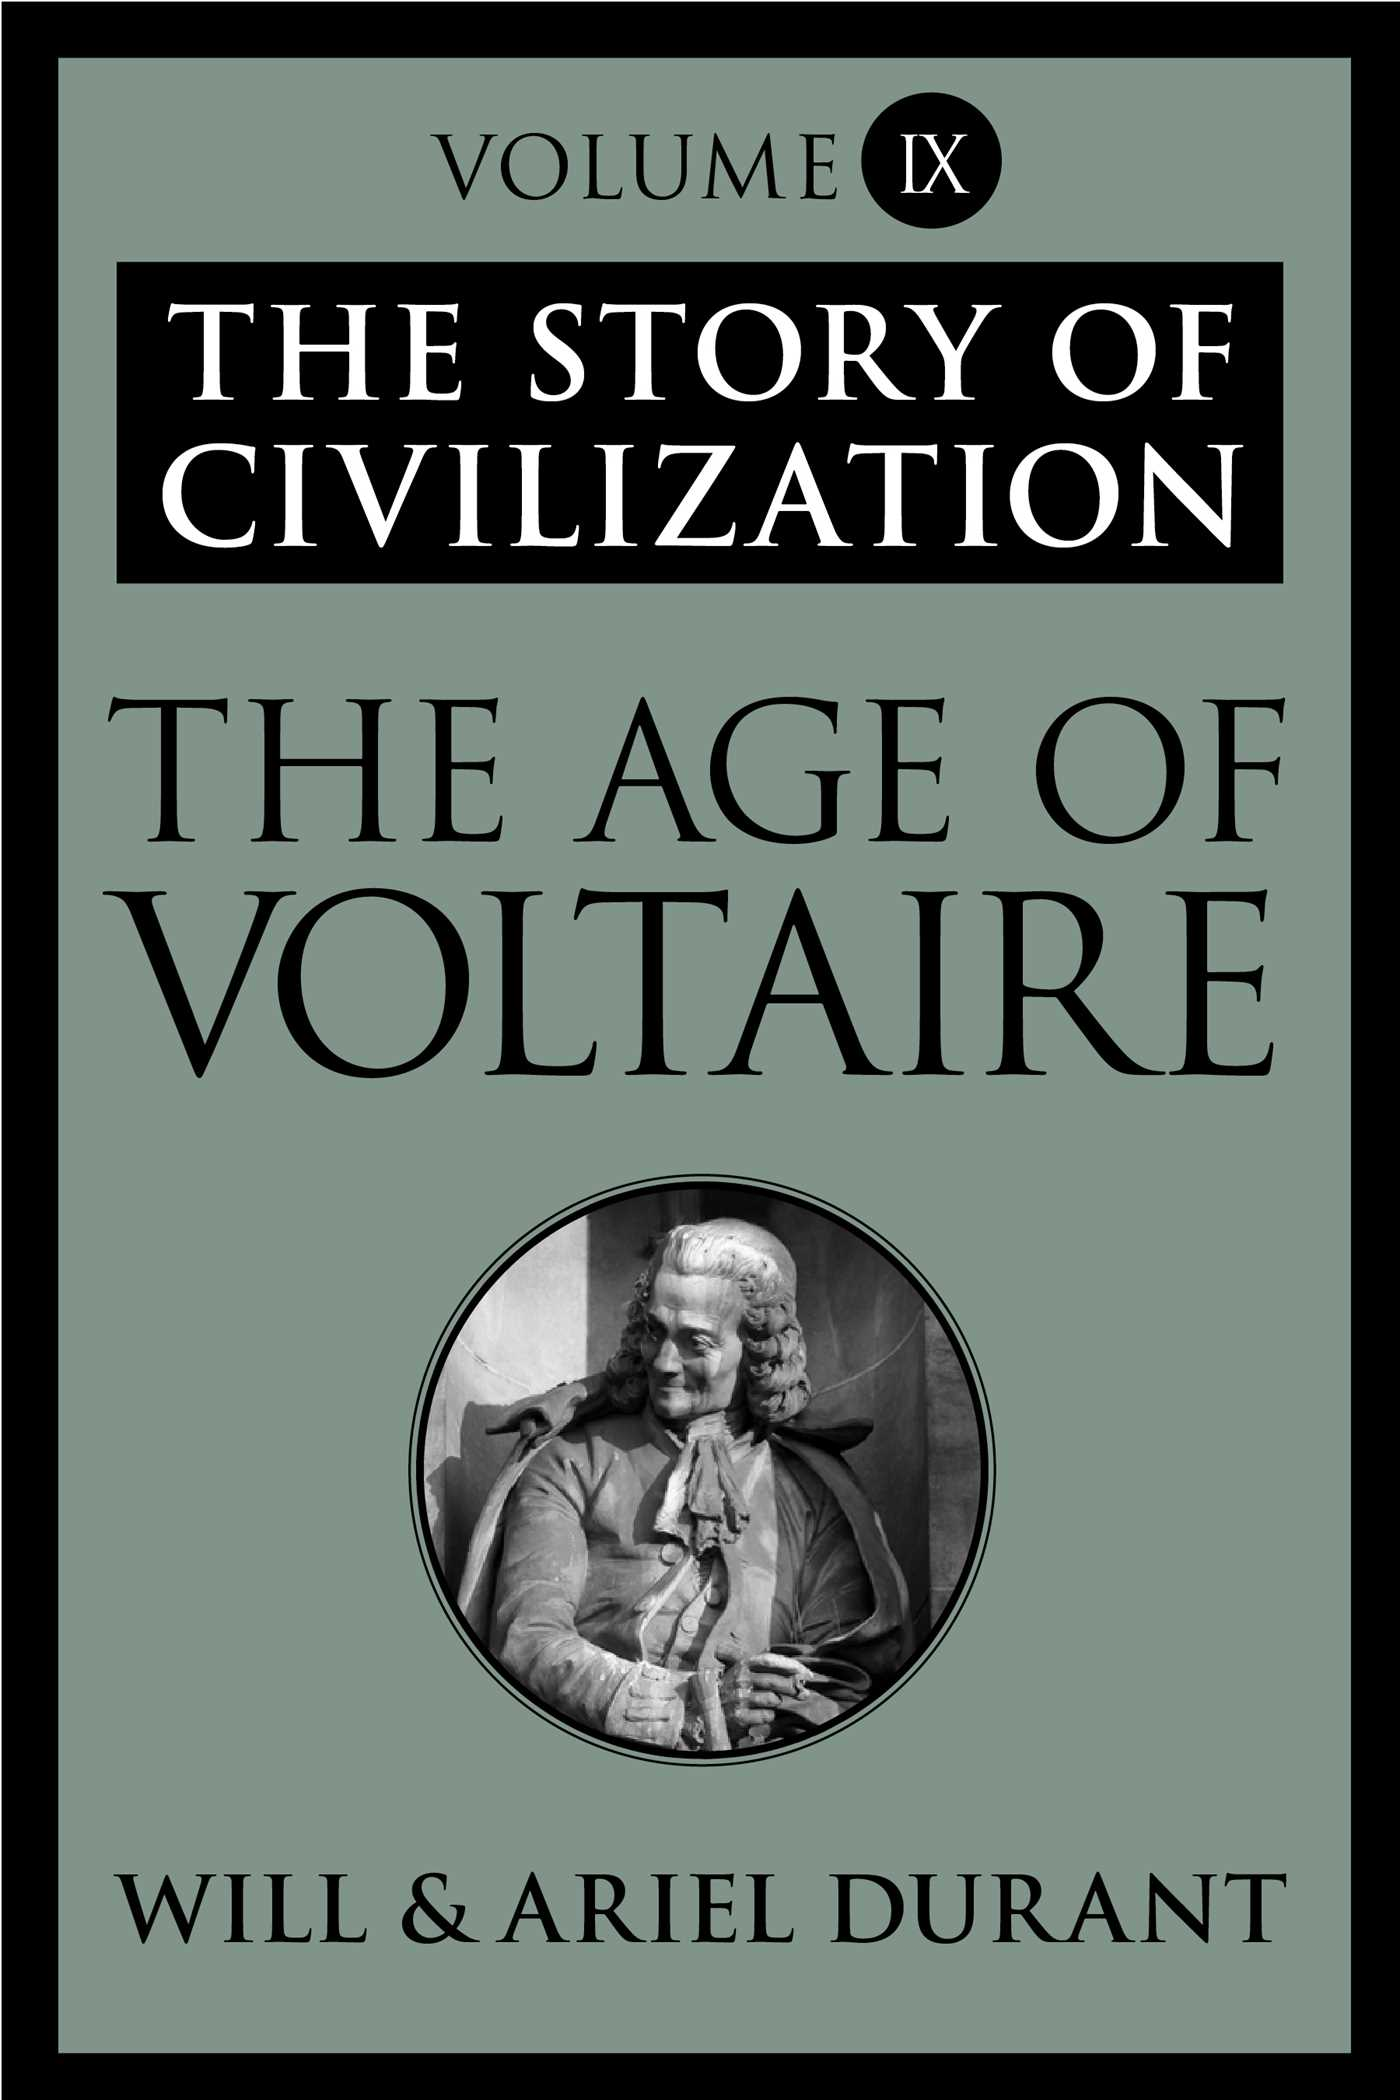 The age of voltaire 9781451647662 hr